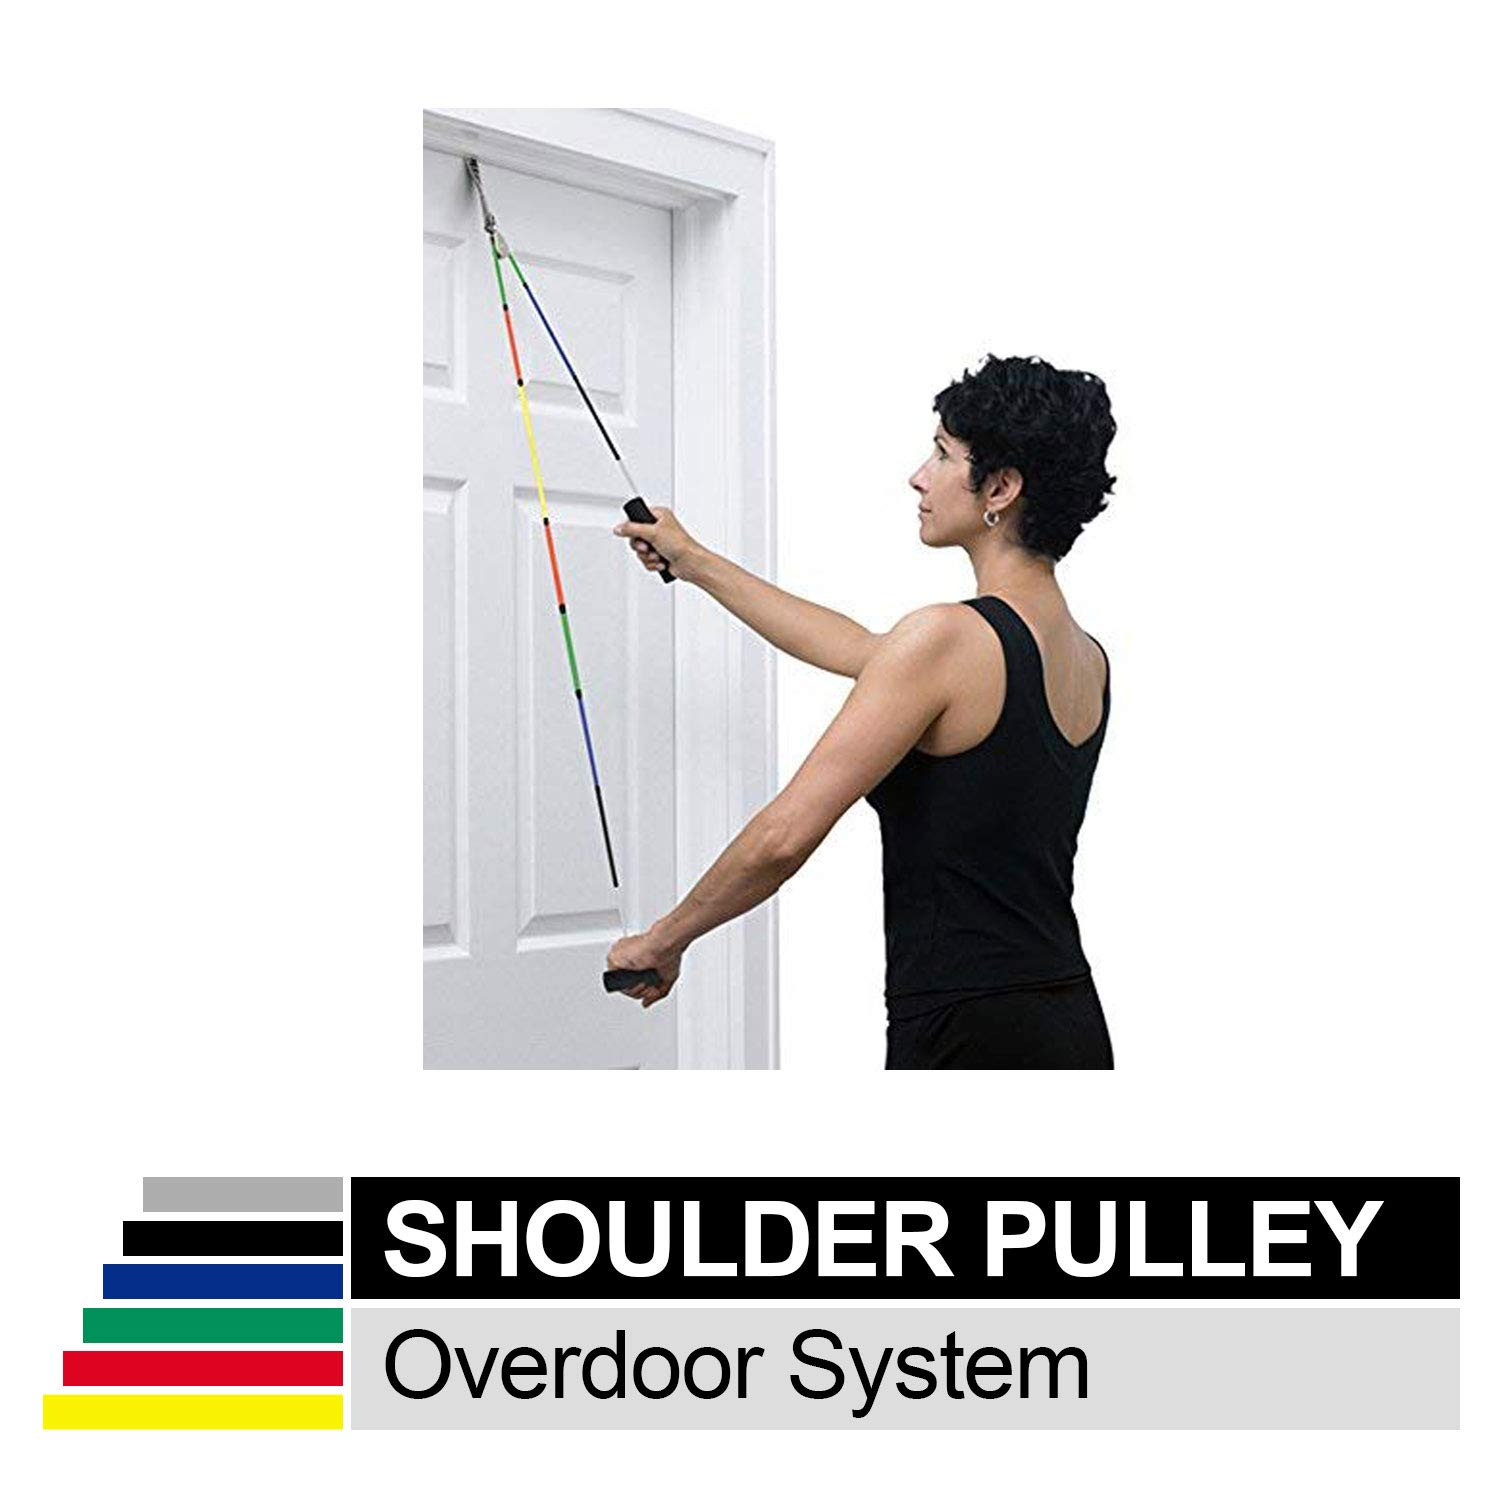 TheraBand Shoulder Pulley, Overhead Shoulder Pulley for Physical Therapy, Over the Door Pulley with Foam Handles and Color Coded Rope for Increasing Range of Motion, Overdoor System for Rehabilitation